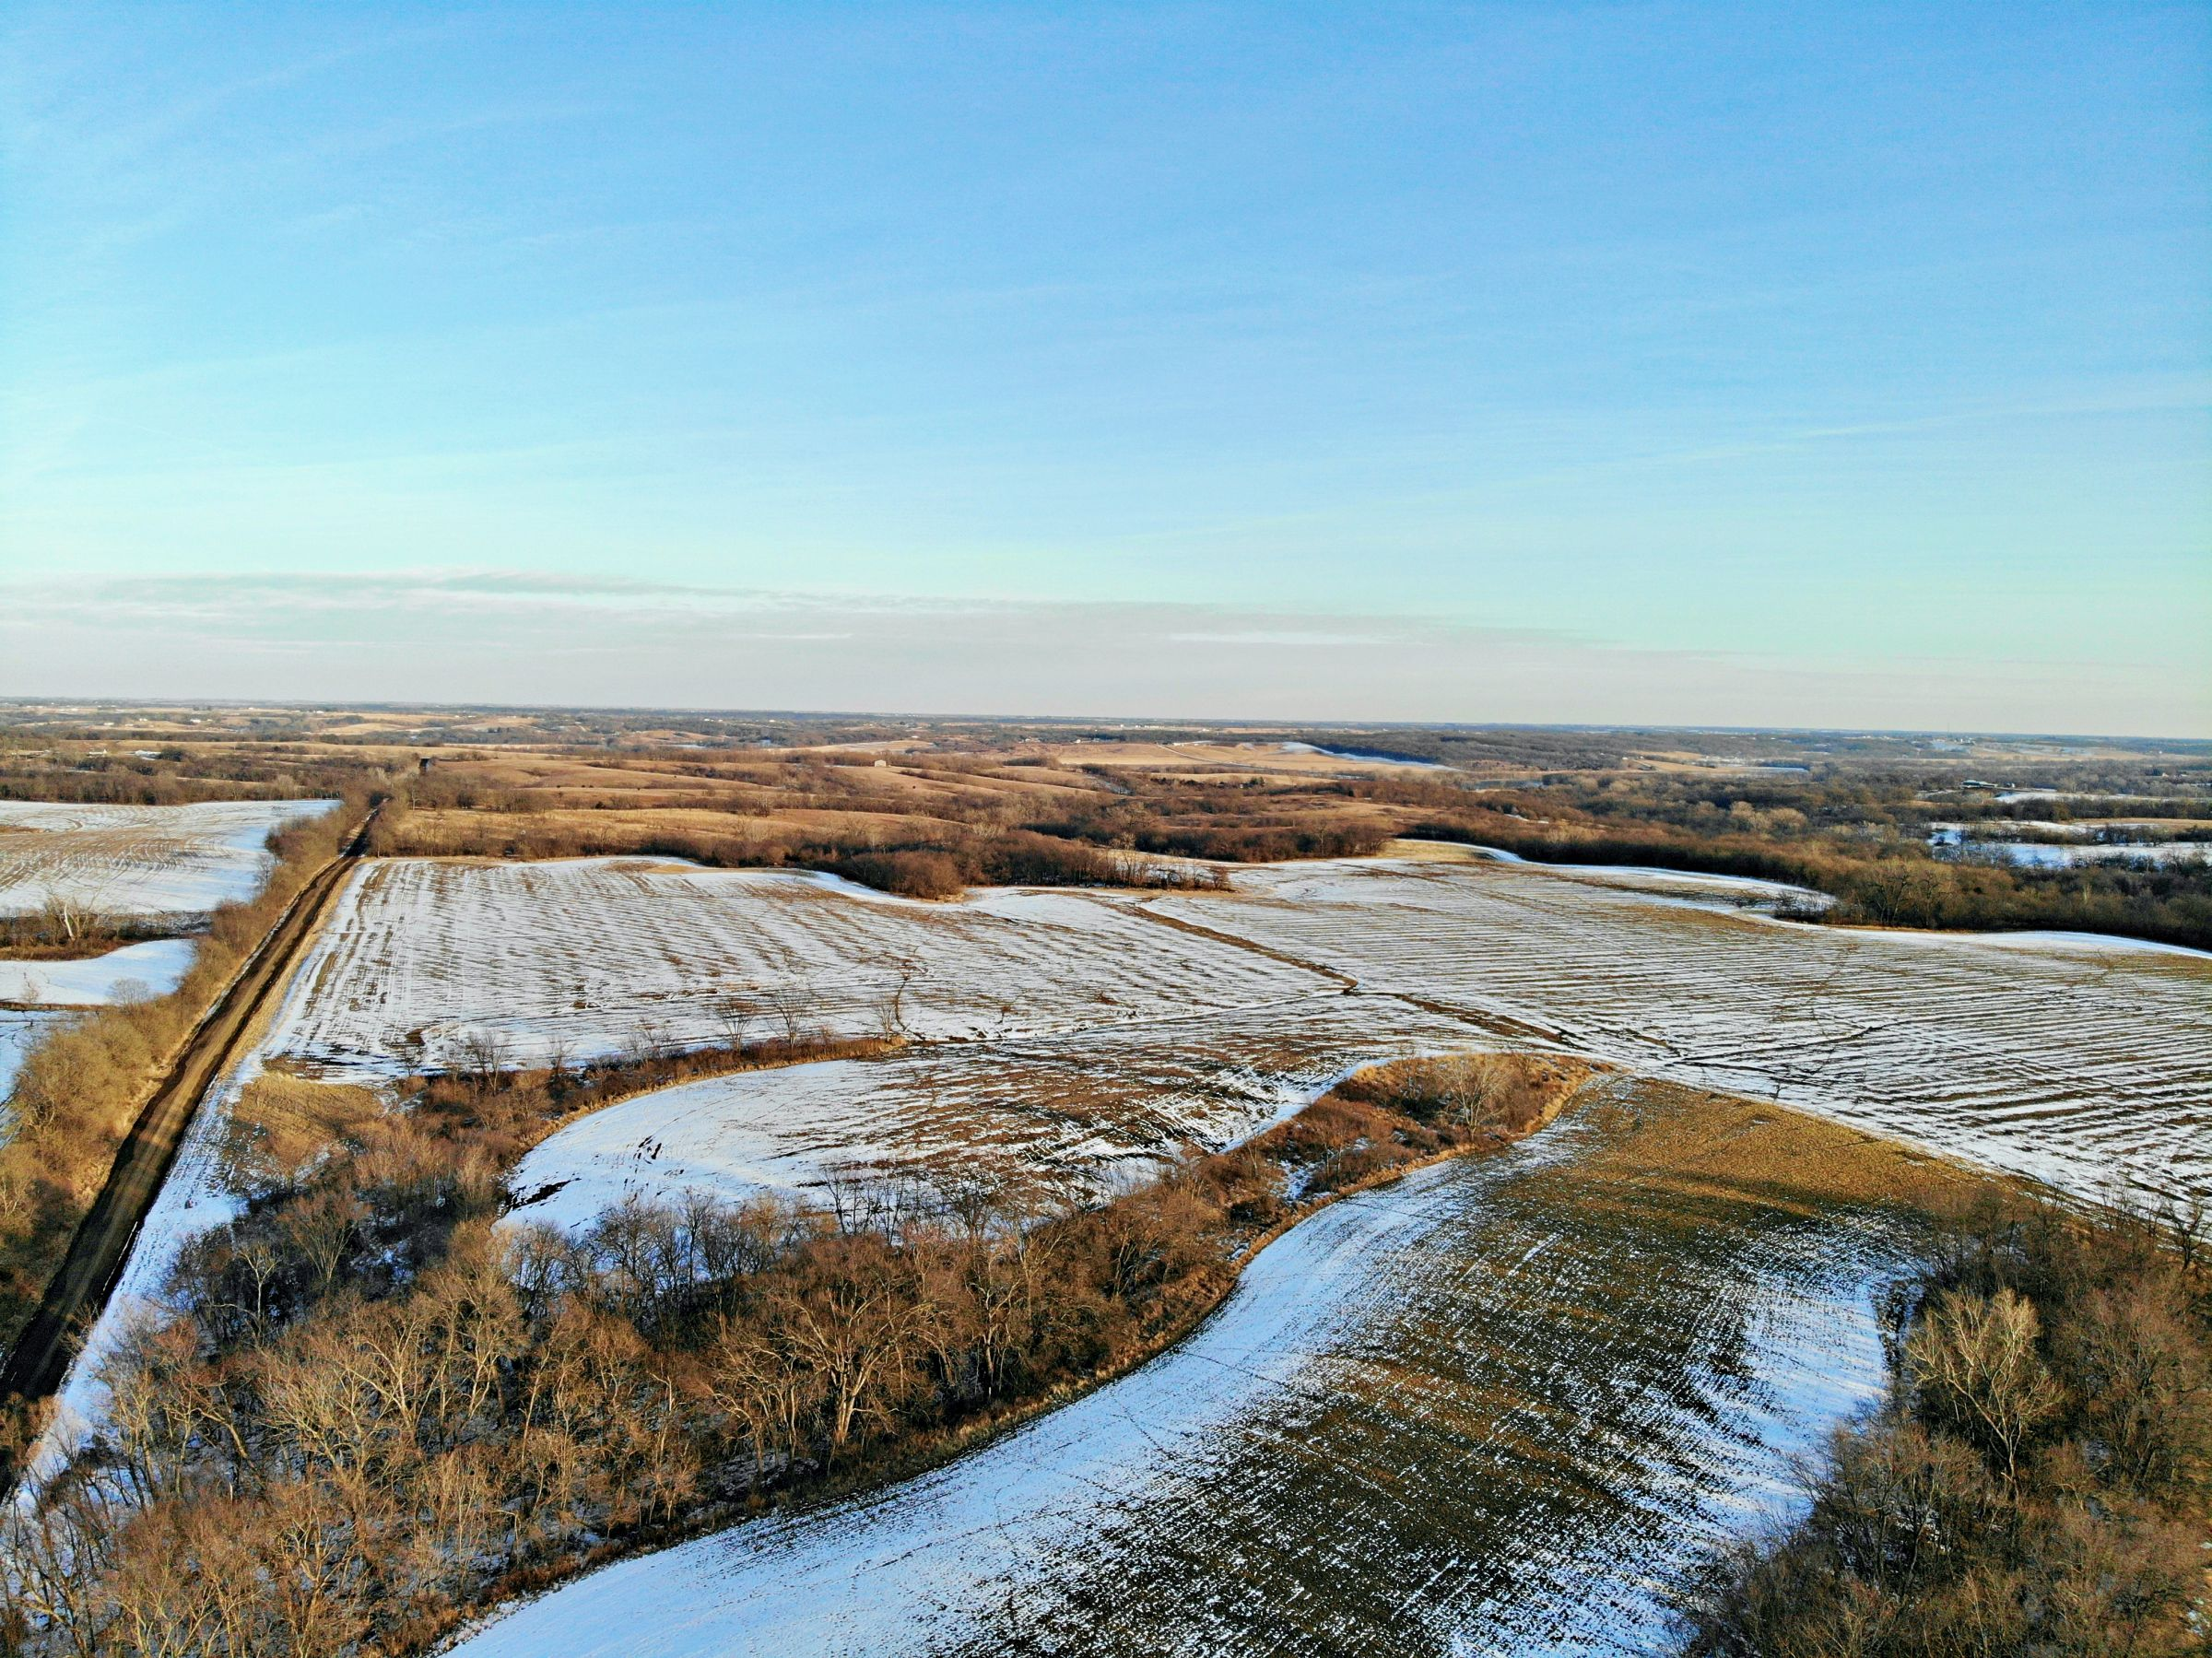 land-warren-county-iowa-19-acres-listing-number-15325-3-2021-01-18-023327.jpg